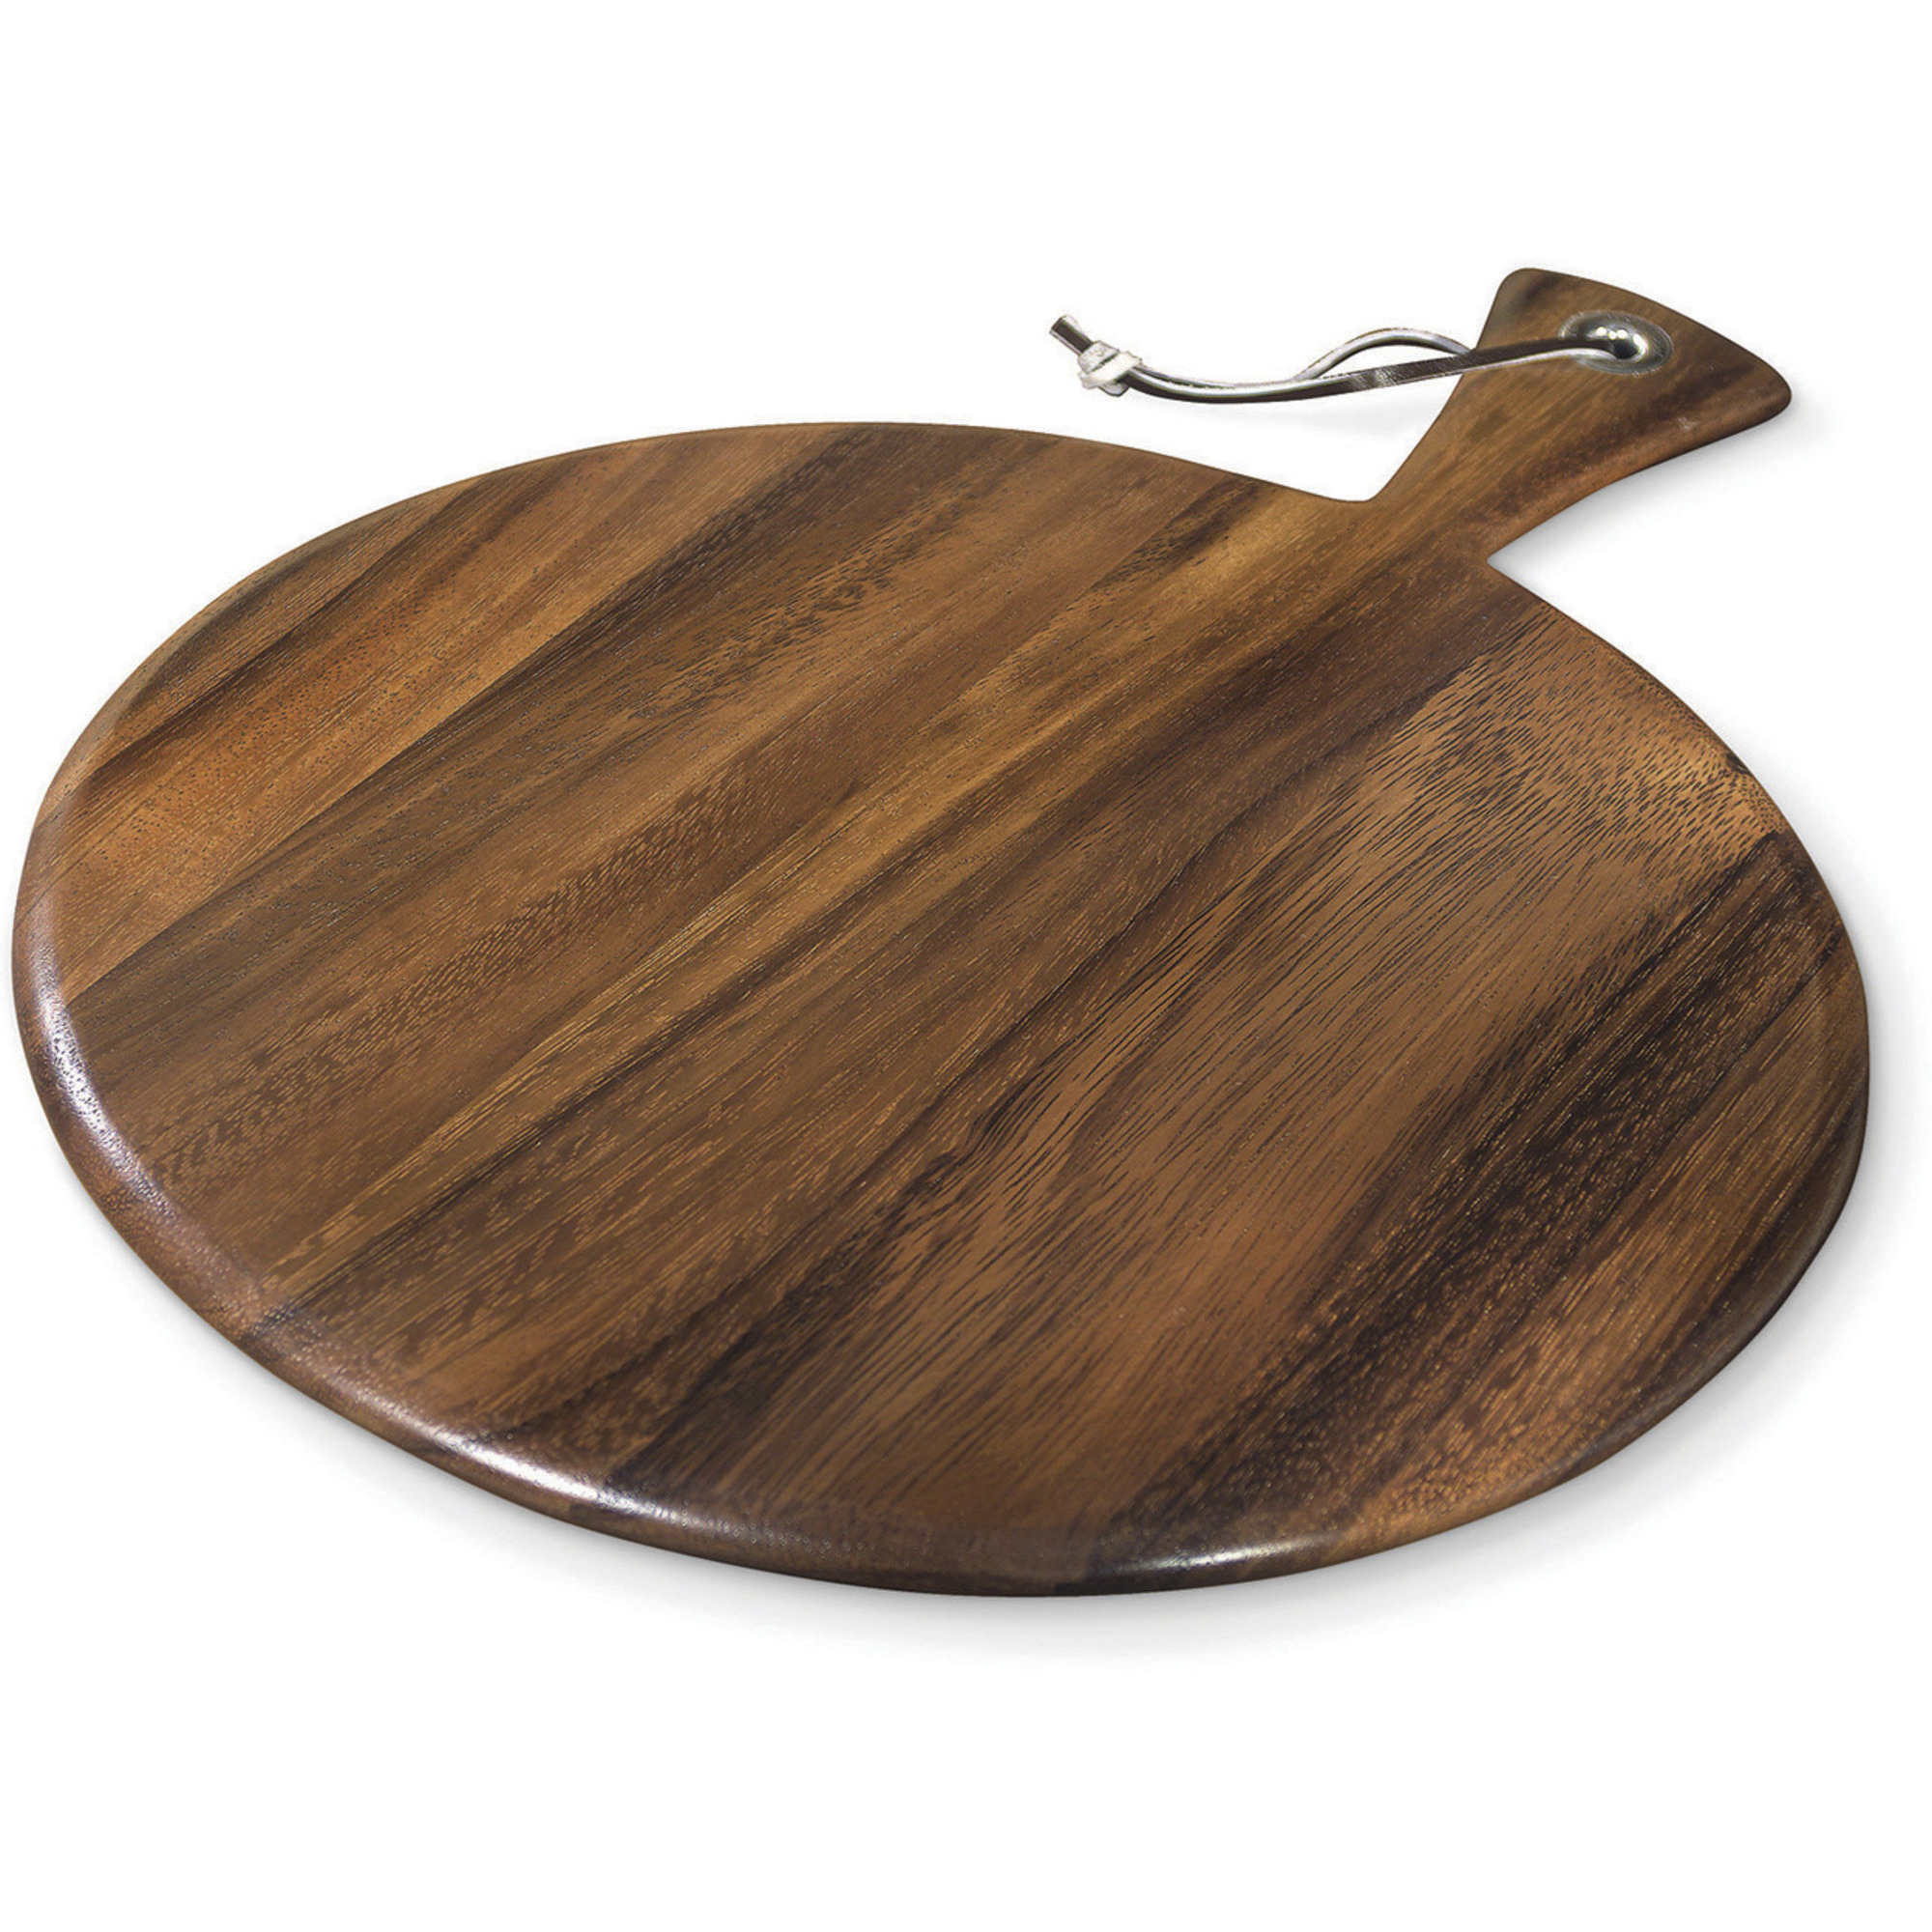 Ironwood Gourmet Paddle Board Rund